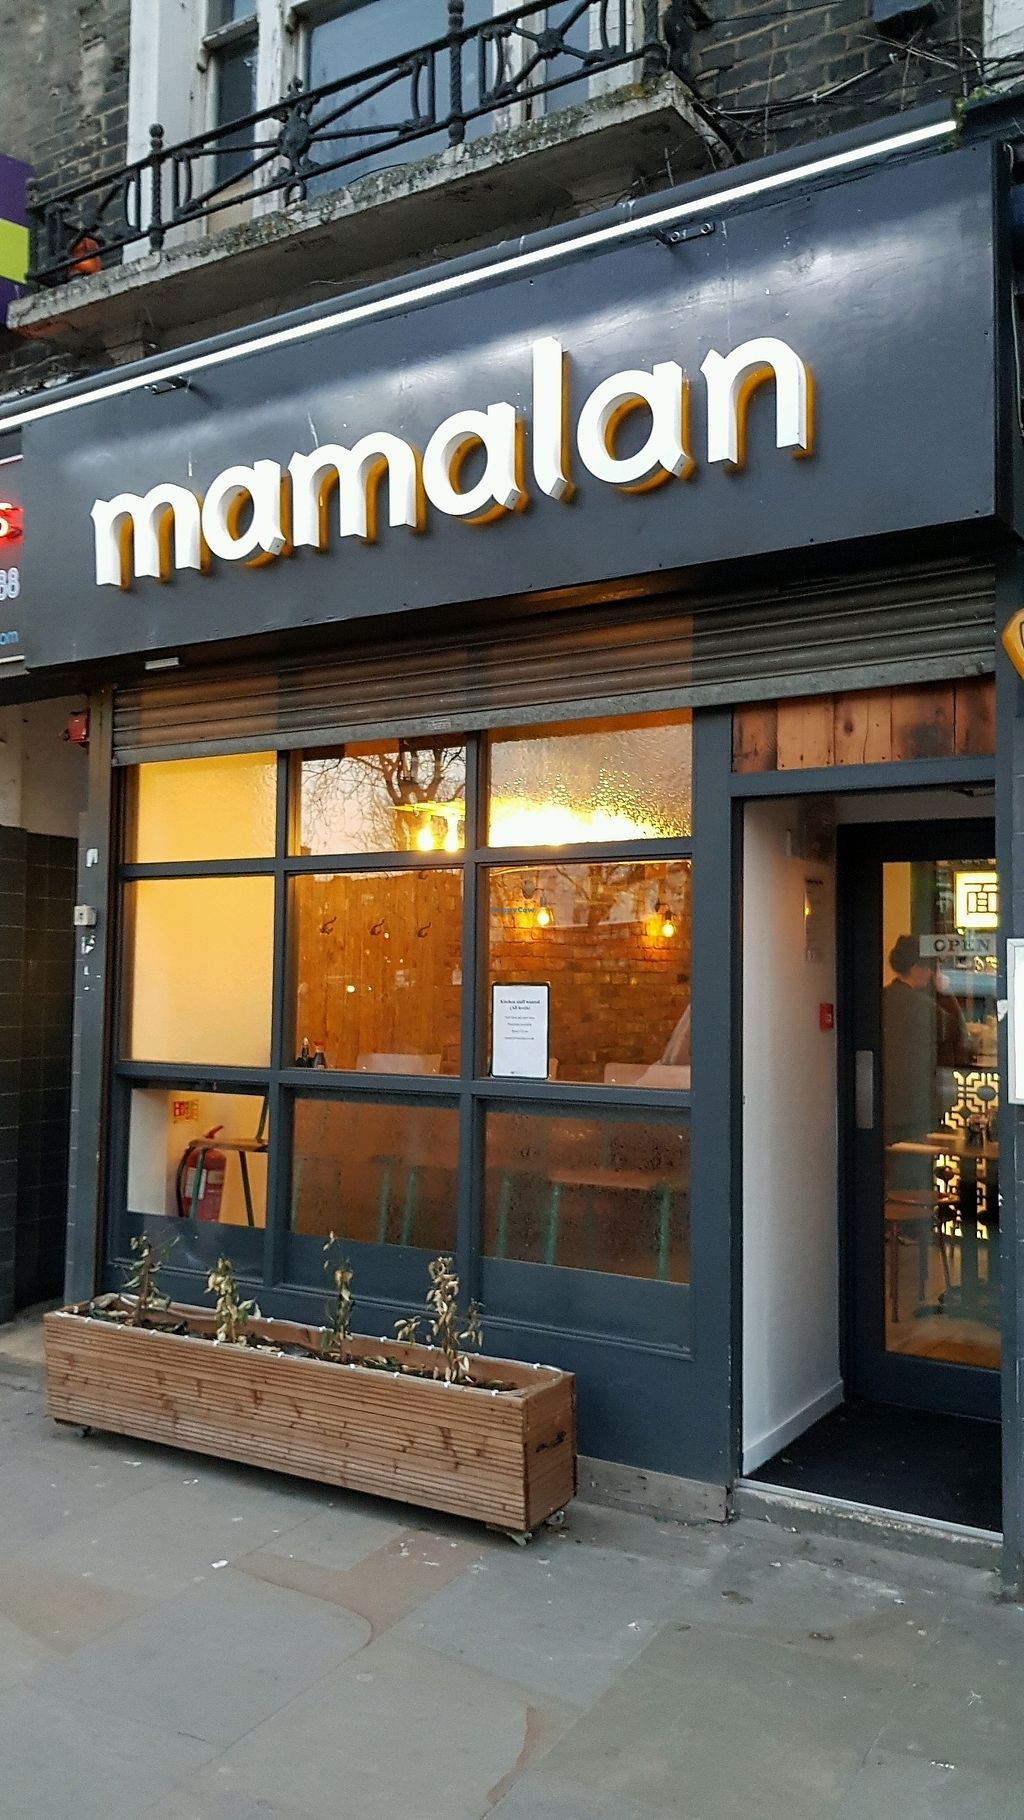 """Photo of mamalan - Clapham  by <a href=""""/members/profile/jollypig"""">jollypig</a> <br/>Outside <br/> March 19, 2018  - <a href='/contact/abuse/image/88268/373065'>Report</a>"""